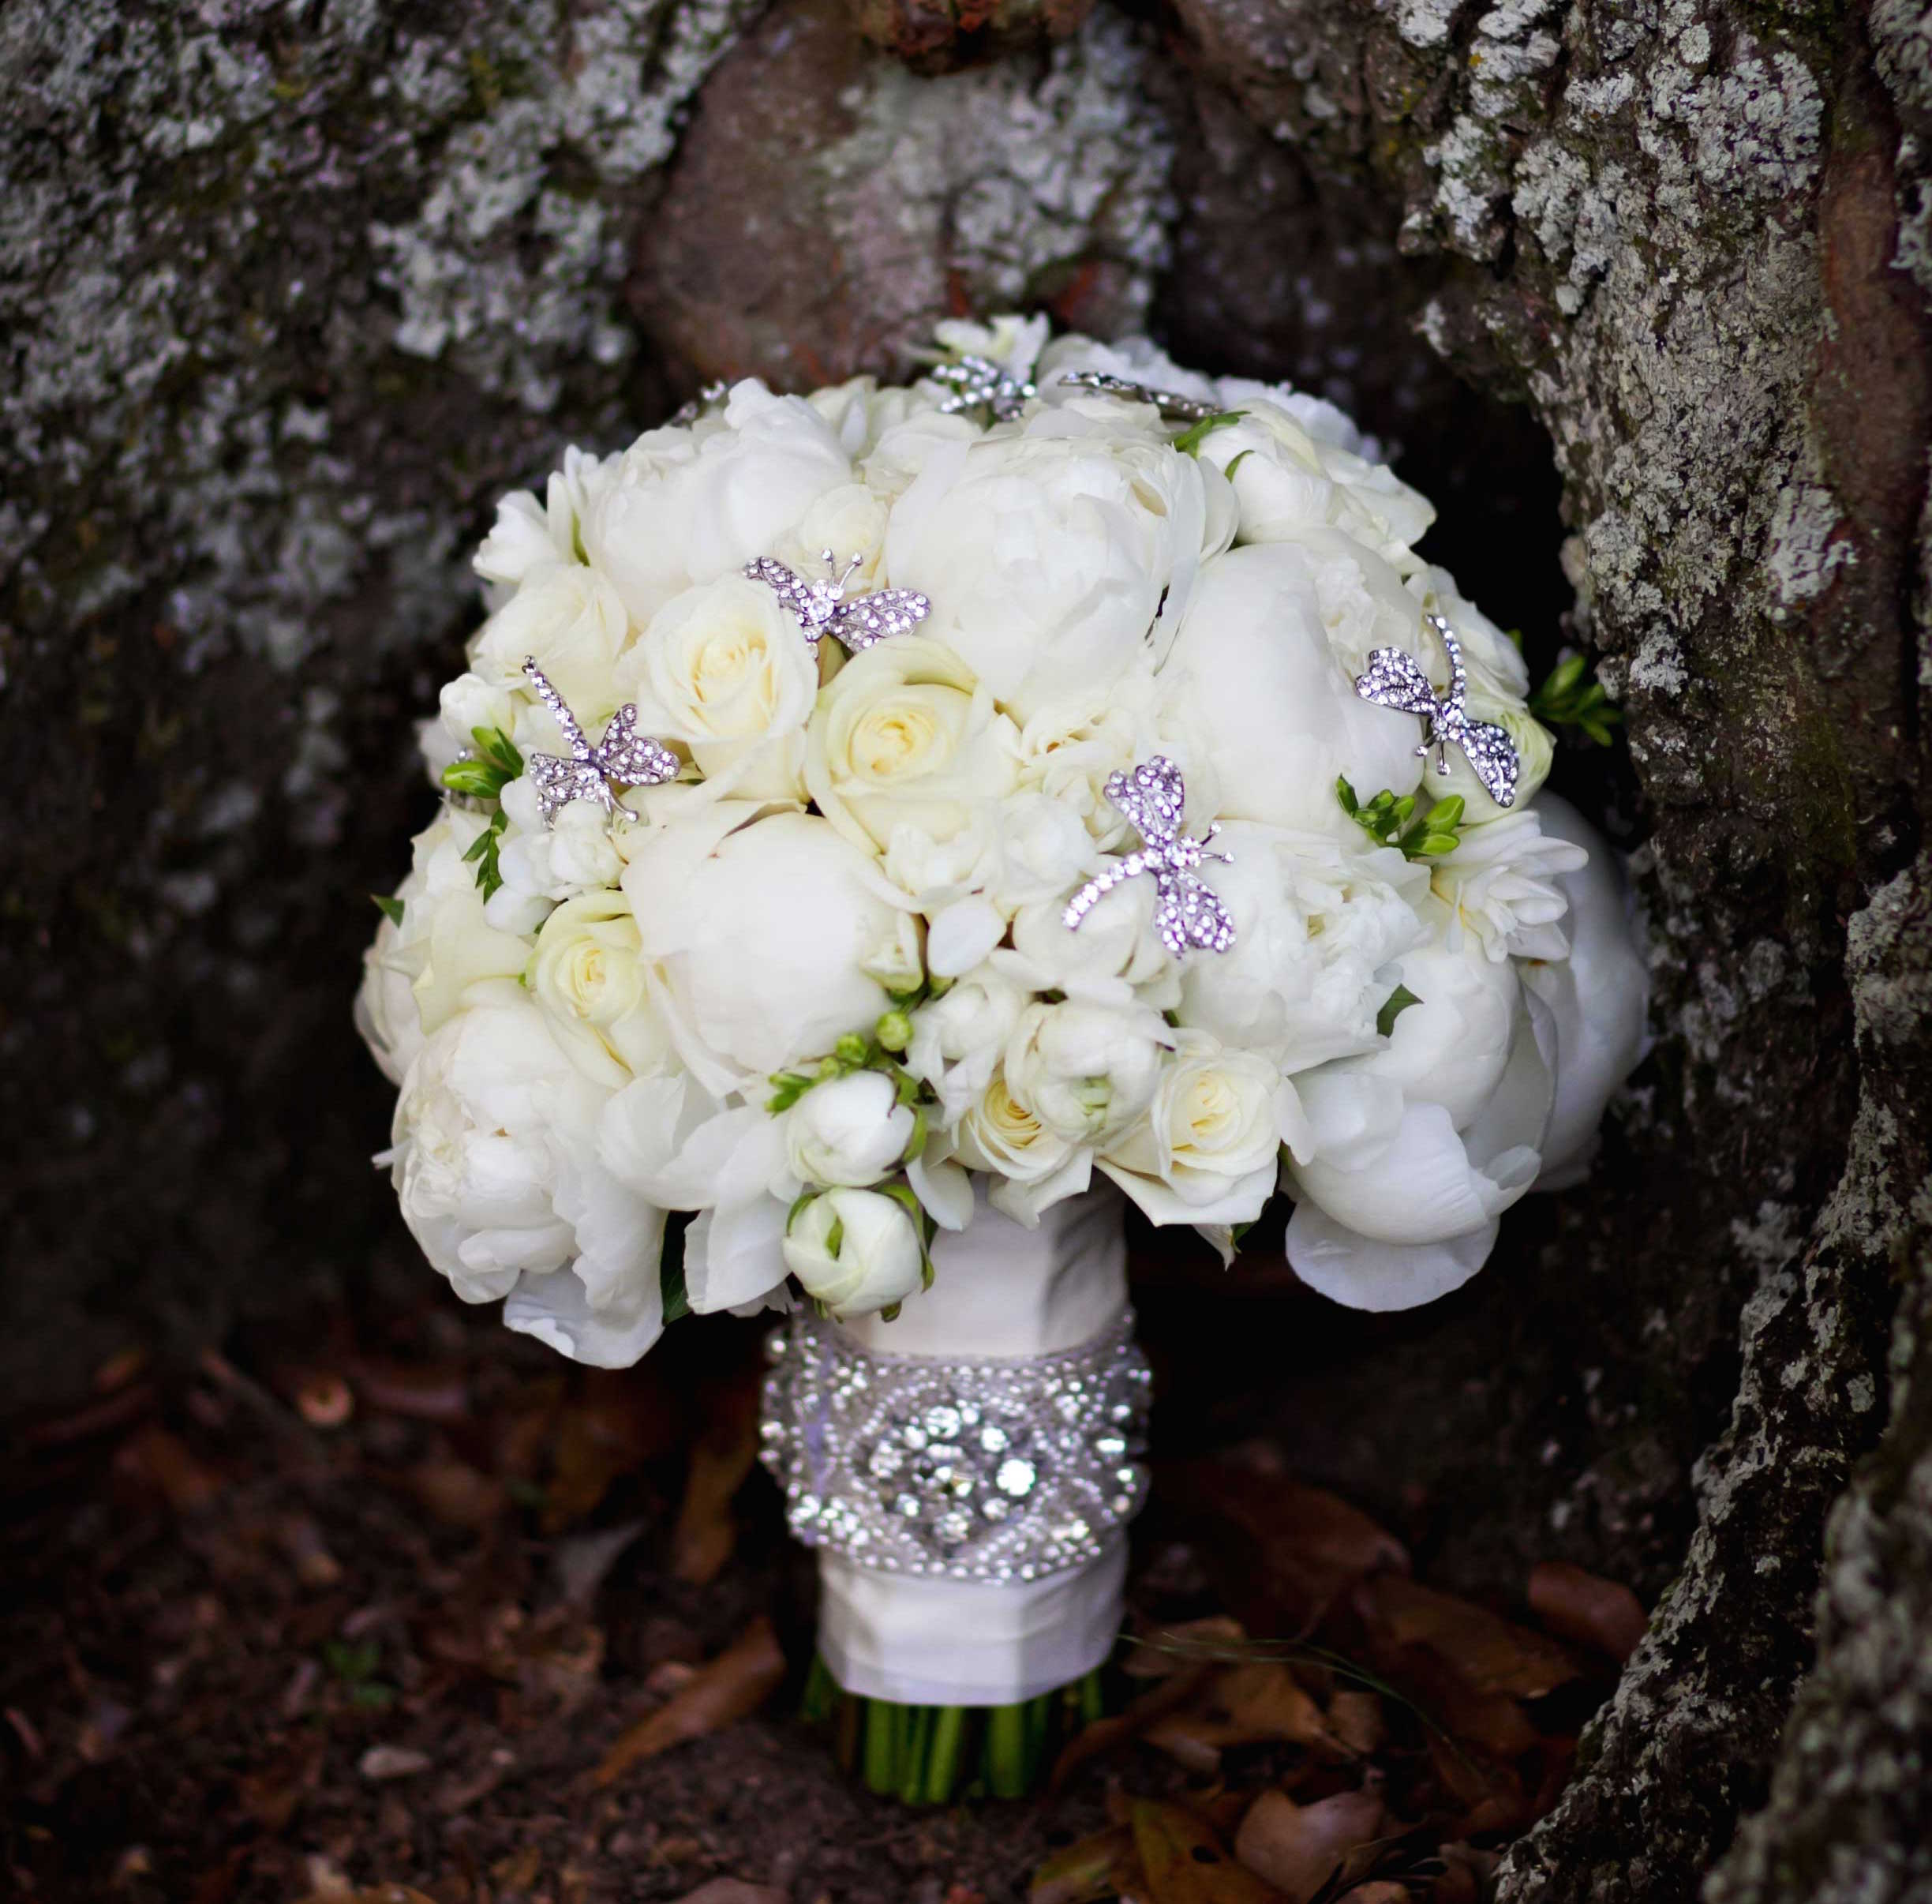 Winter wedding bouquet ideas white rose and peony bridal bouquet dragonfly brooches rhinestones